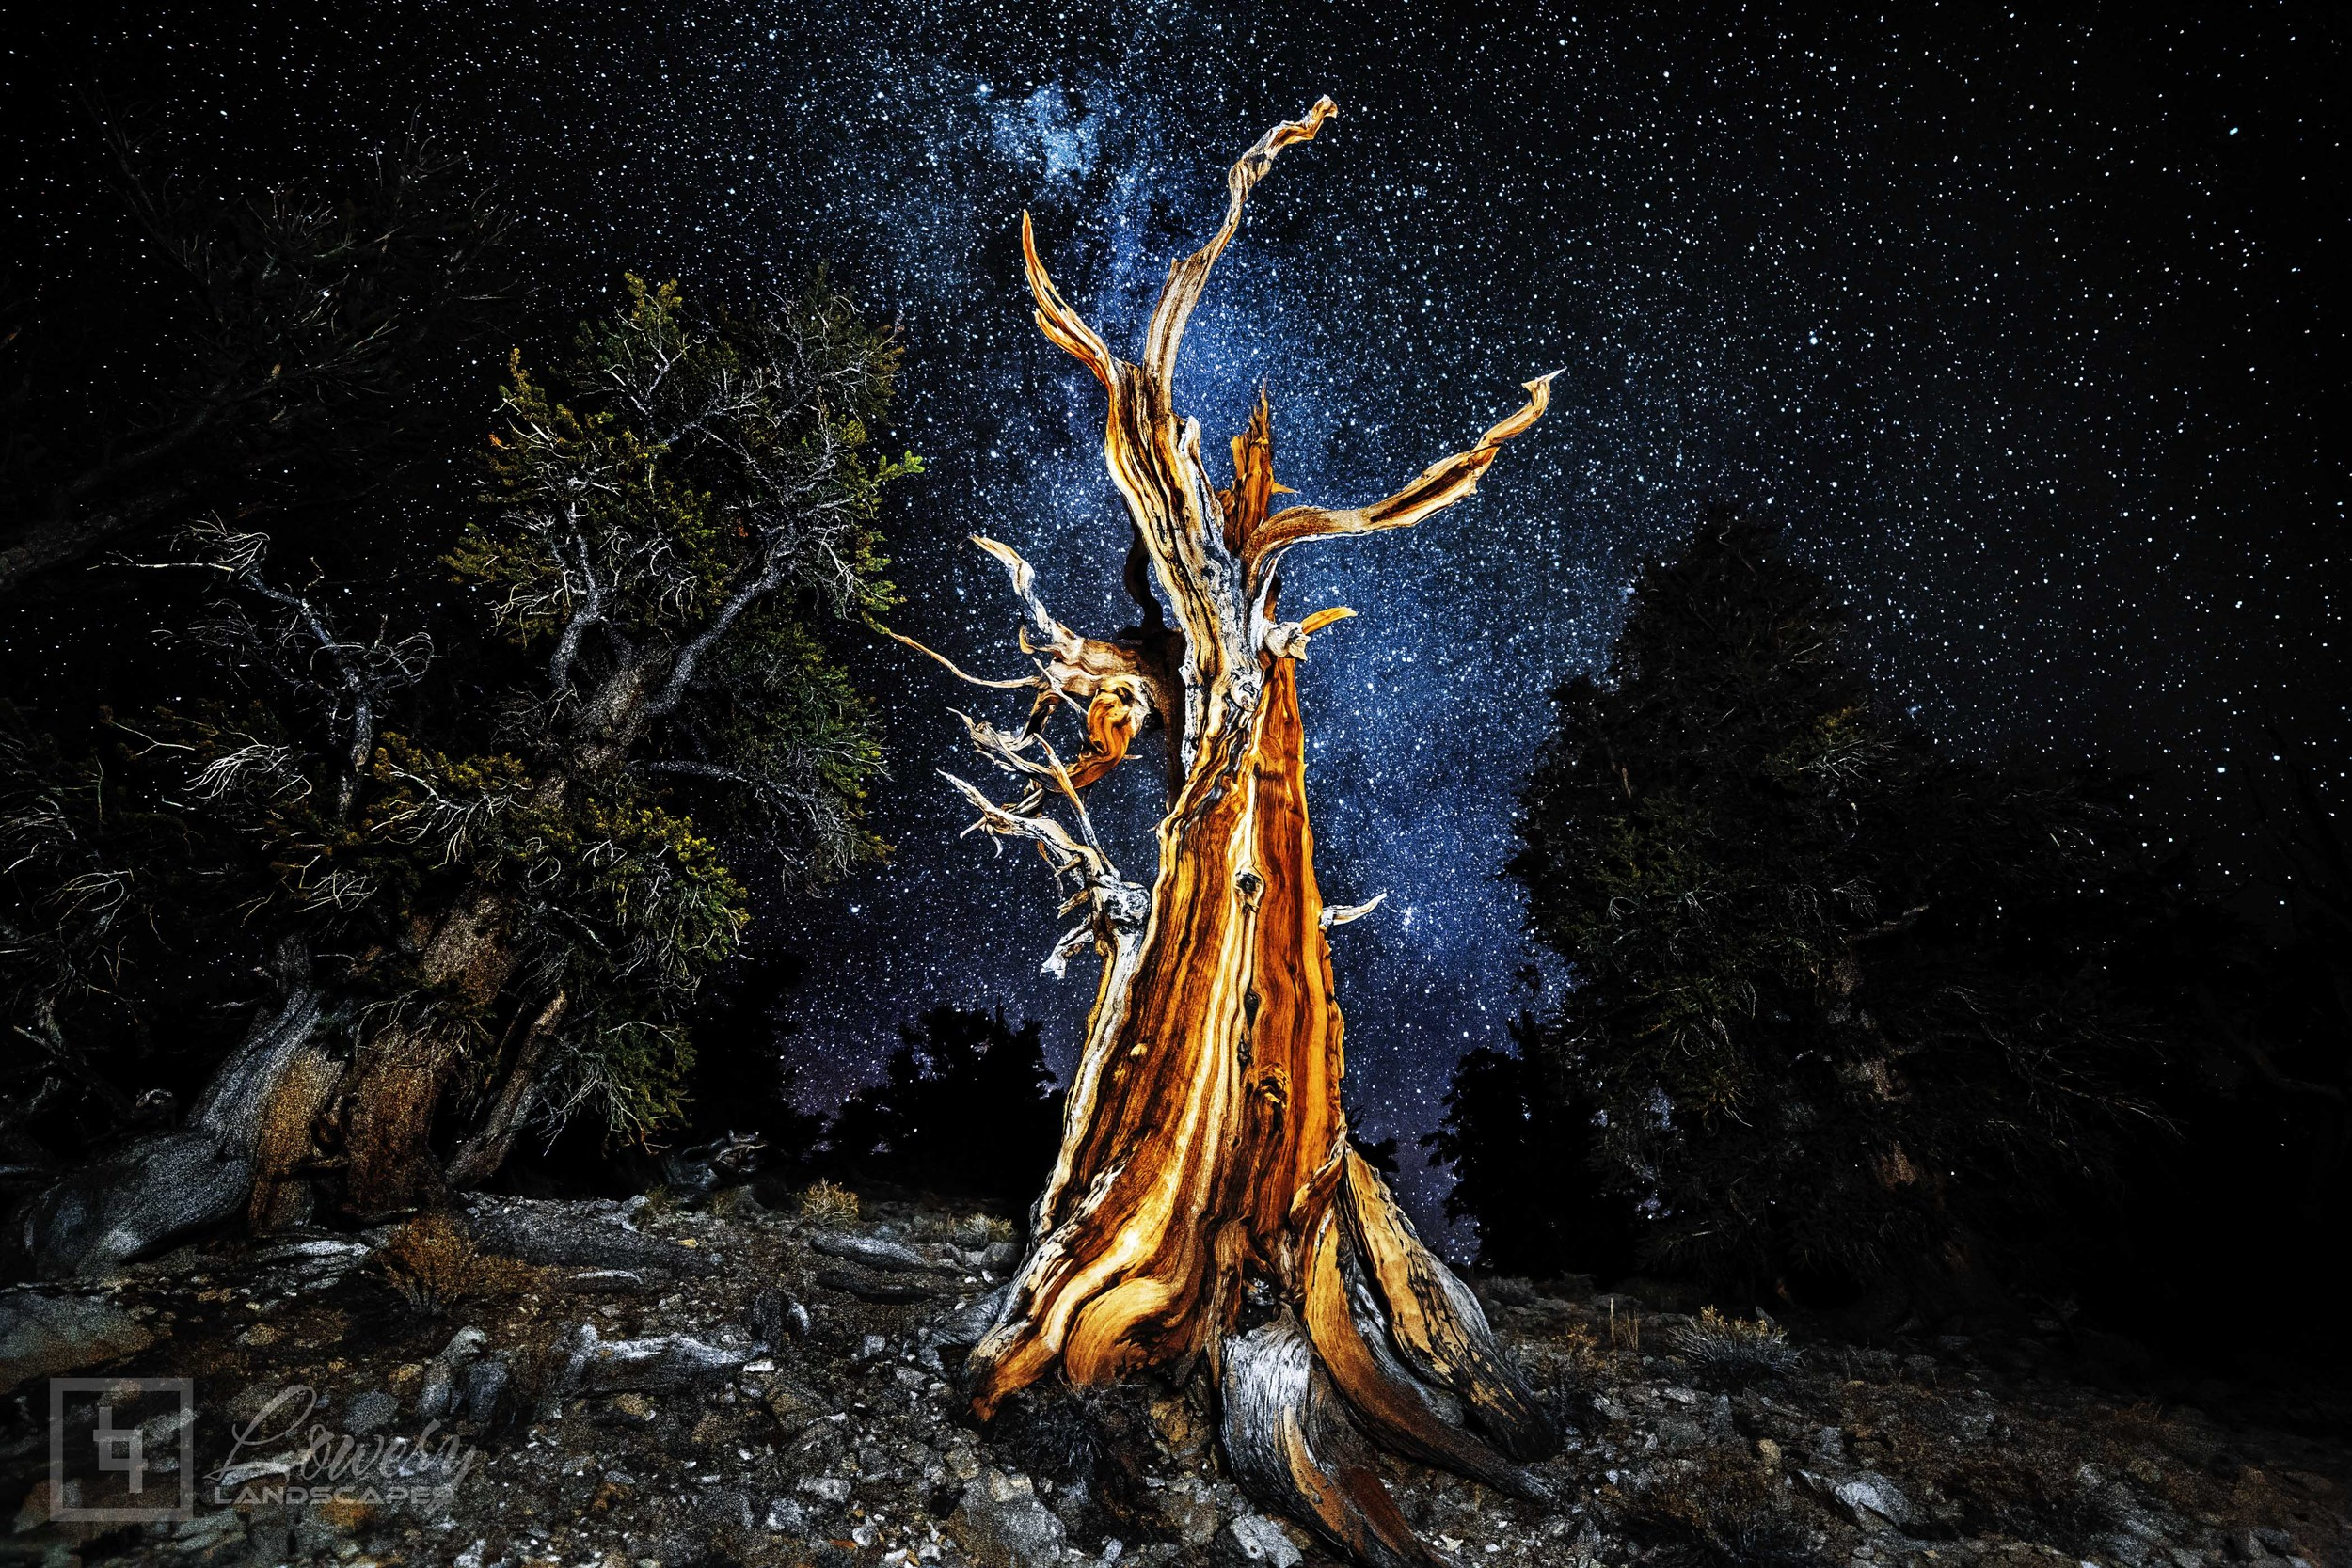 A nearly 5000 year old Bristlecone Pine reaches up to the Milky Way near the 11,280 foot summit of one of California's White Mountains, lit by the single LED on the back of my iPhone during this exposure.